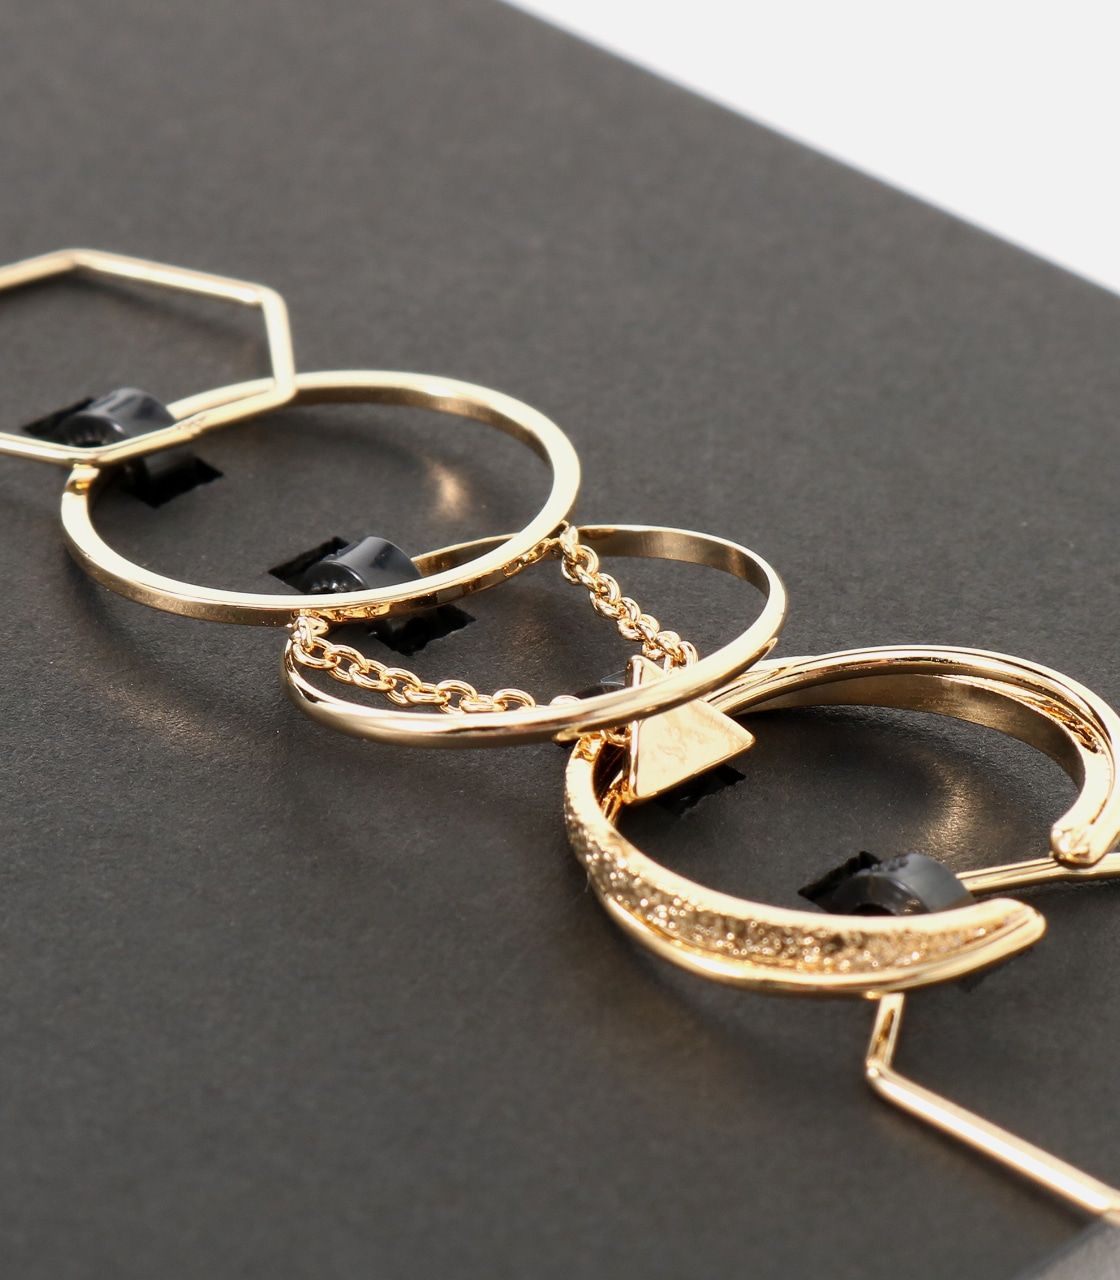 【AZUL BY MOUSSY】チェーンモチーフ5本SETリング 詳細画像 L/GLD 6